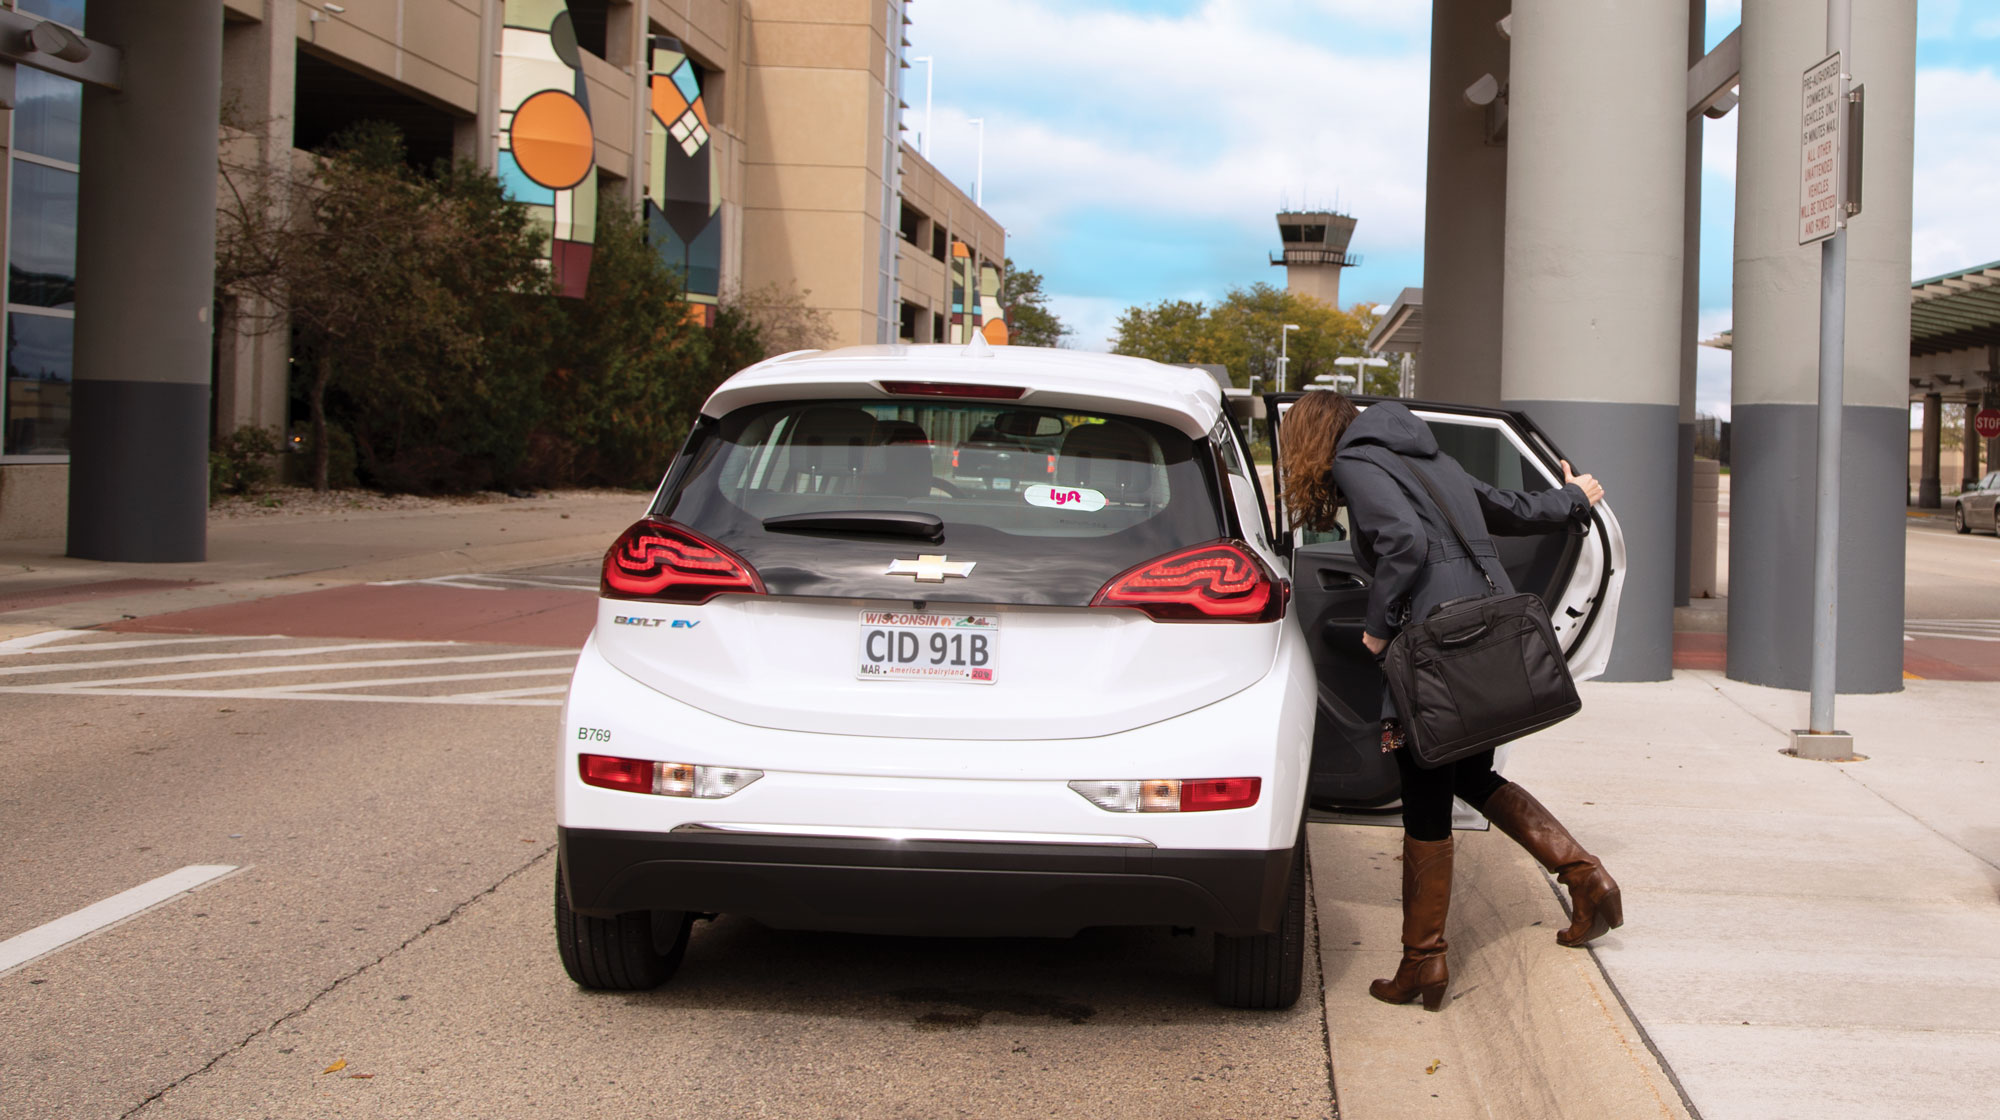 MGE is partnering with the ridesharing company Lyft to grow the use of electric vehicles (EV).